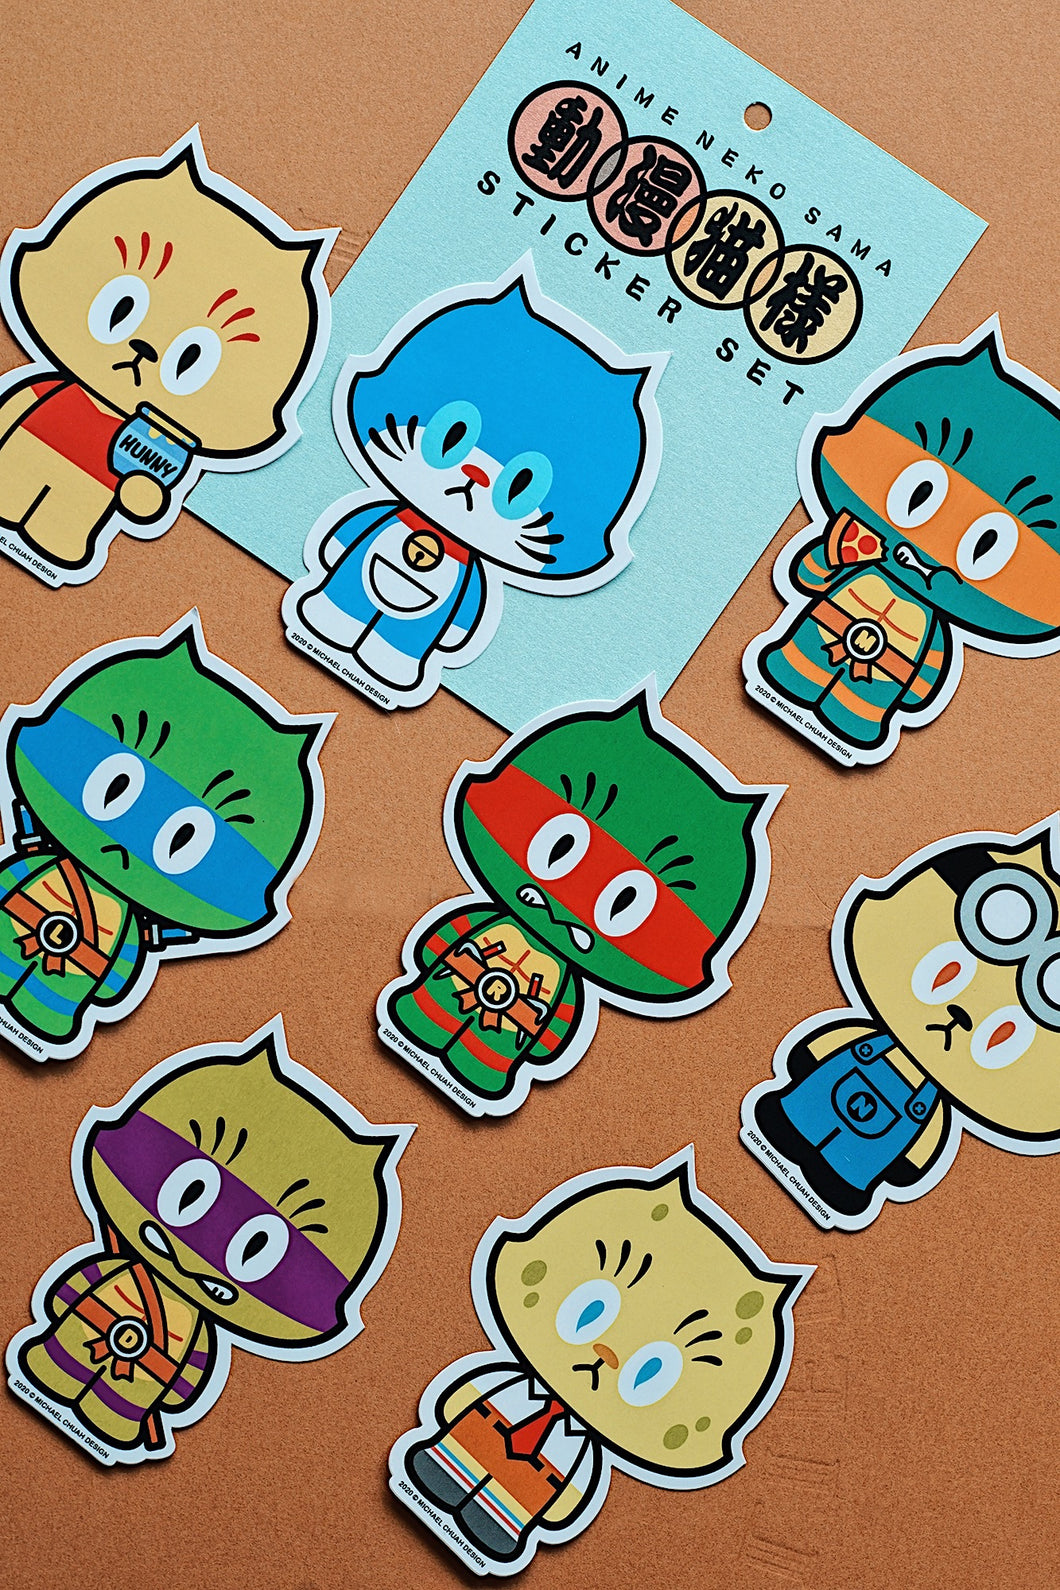 Michael Chuah - Anime Neko Sama Sticker Set